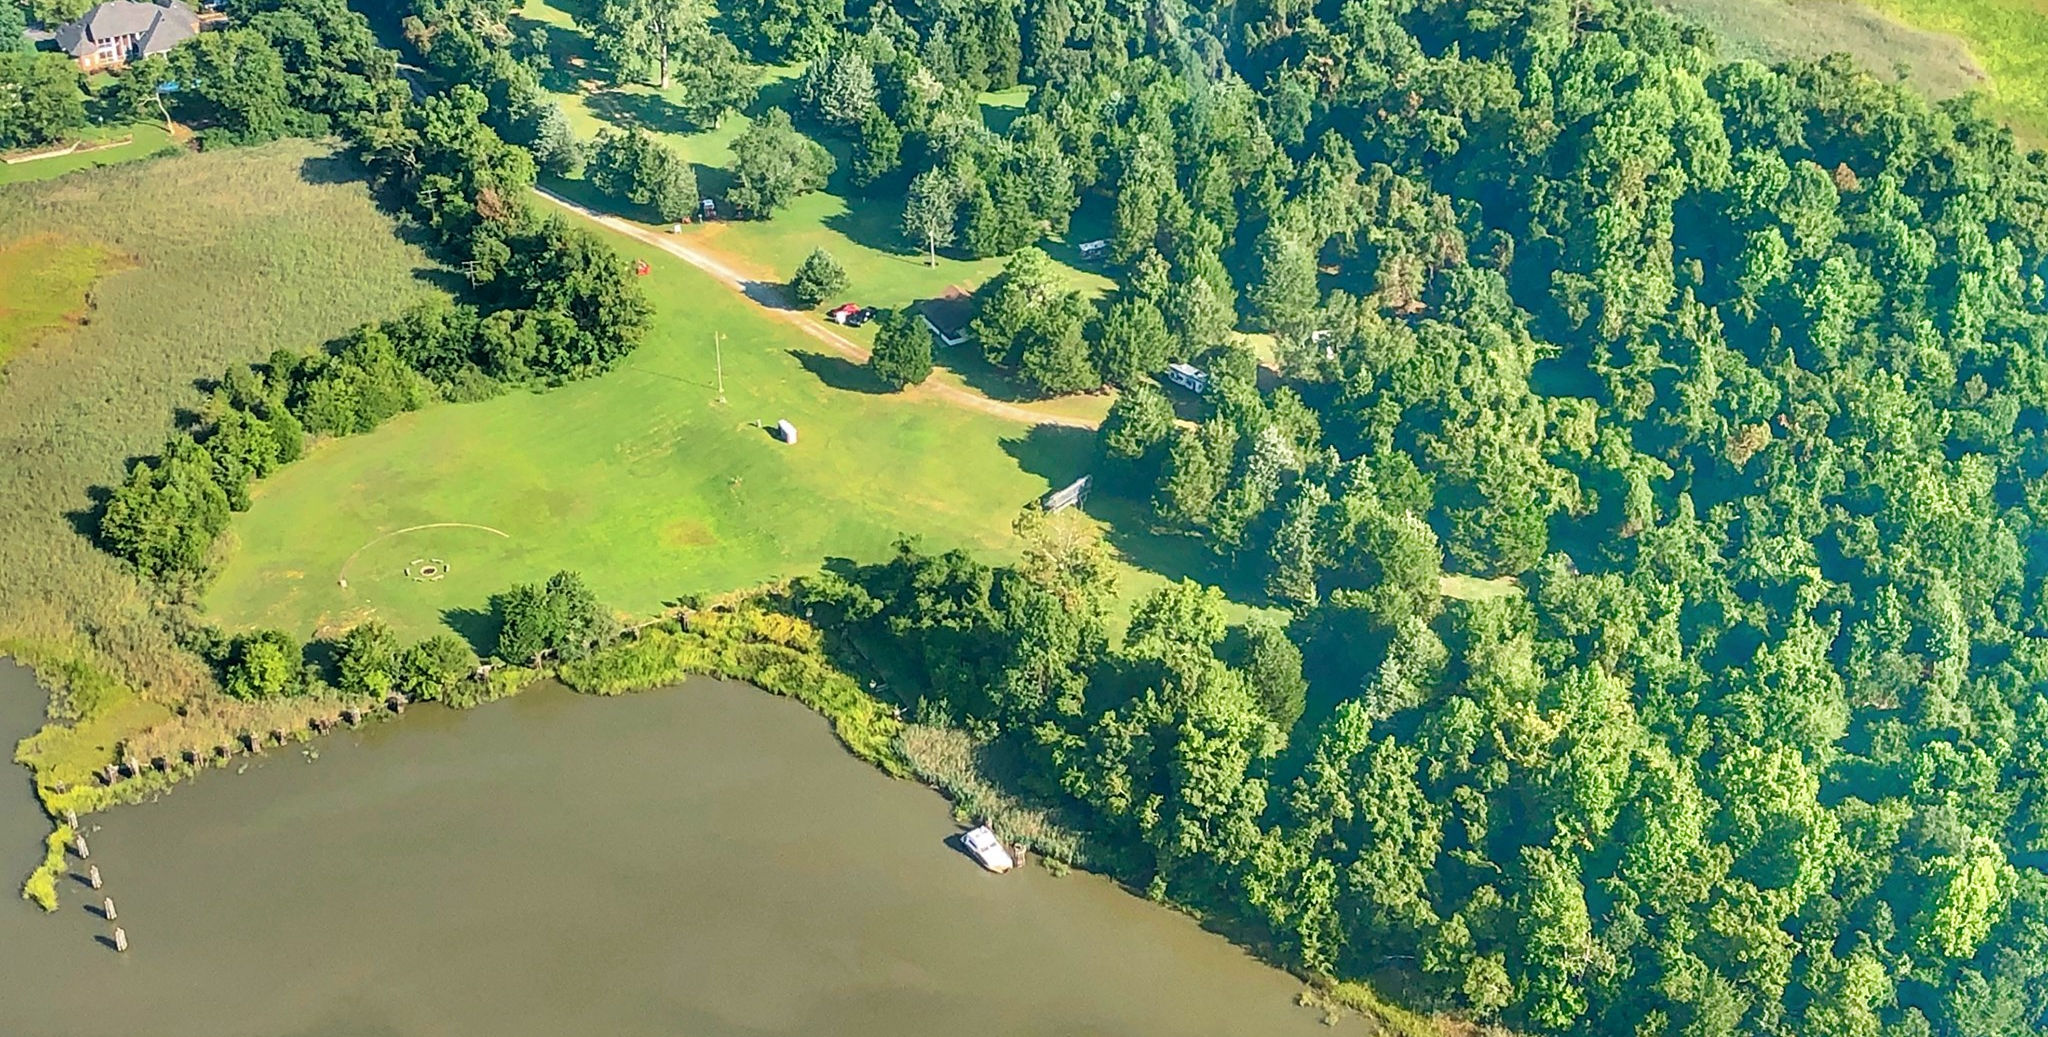 Aerial view of riverfront property.